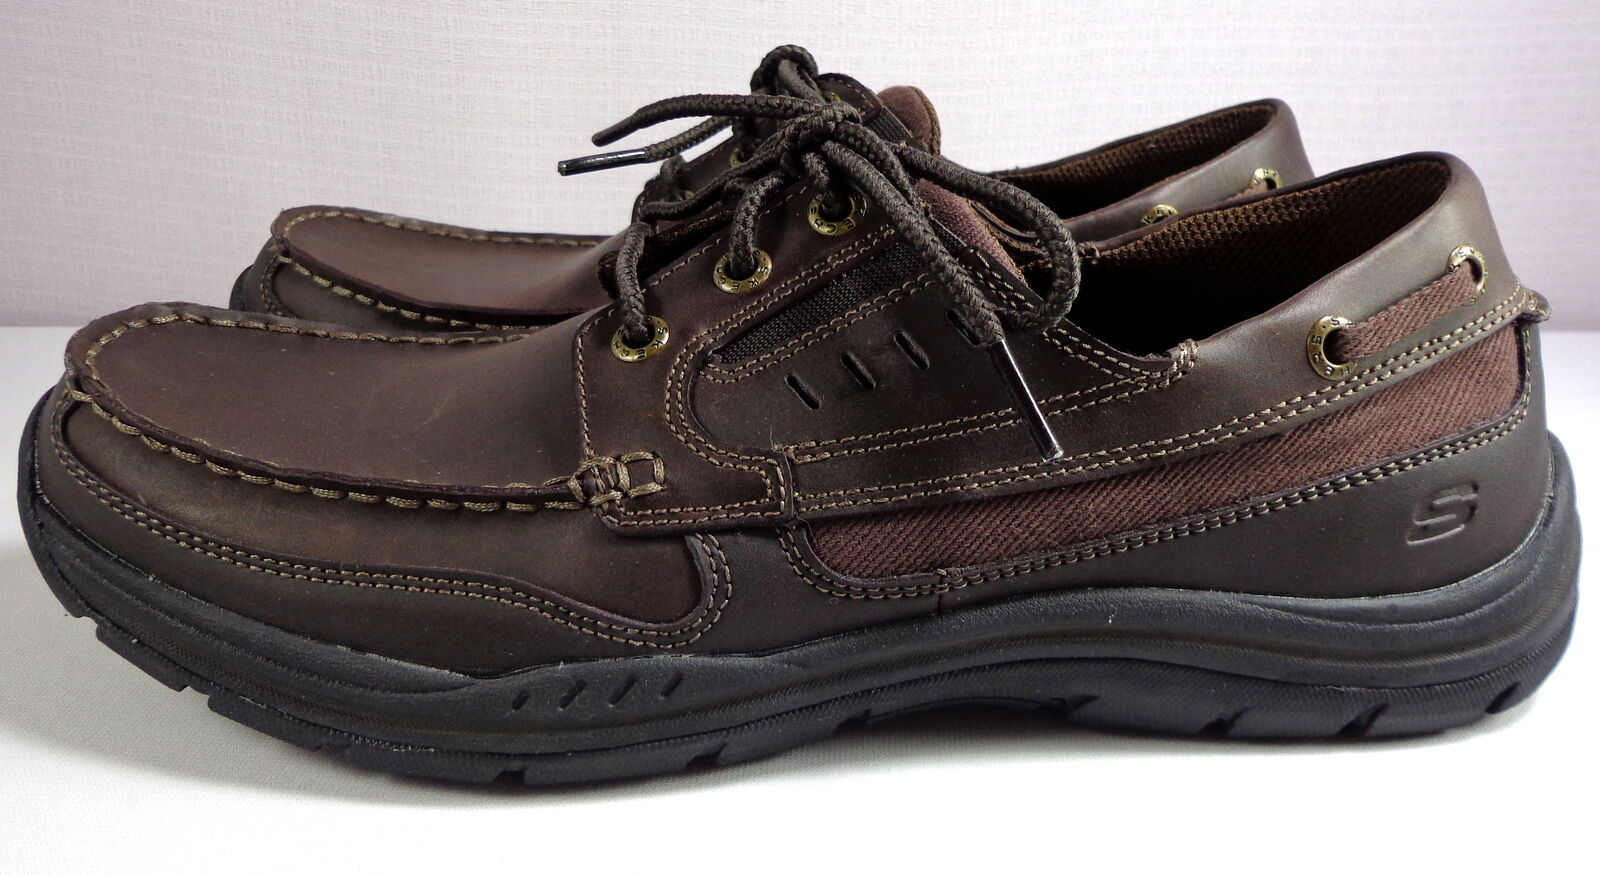 Scarpe casual da uomo  uomos Skechers Relaxed Fit Memory Foam Brown Oxfords Size 10 Lace Up Shoes